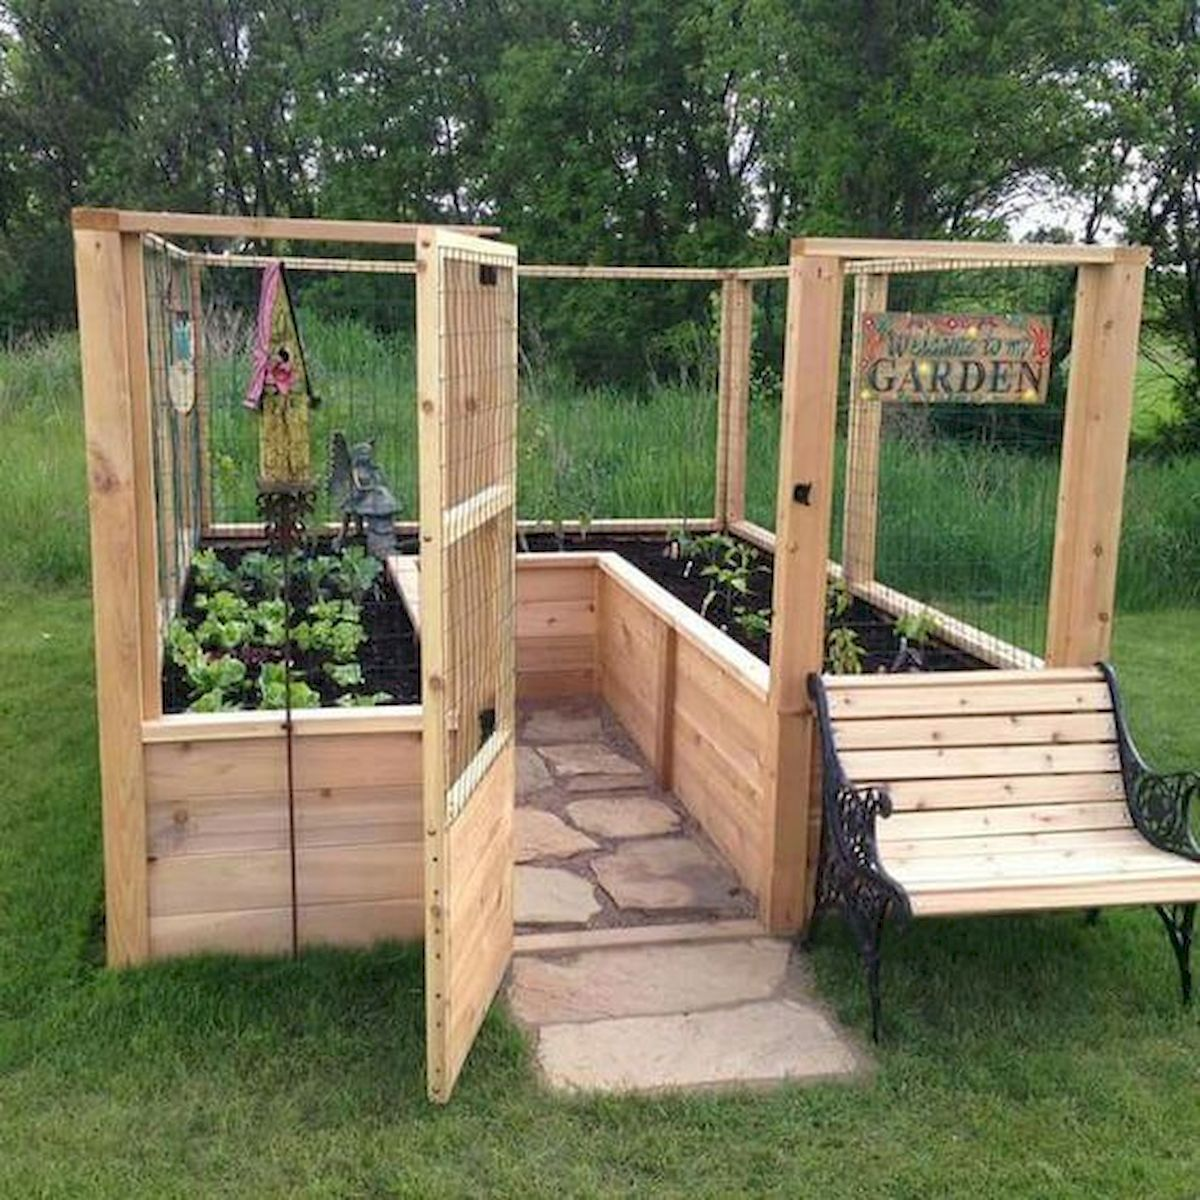 25 Easy Diy Vegetable Garden Small Spaces Design Ideas For